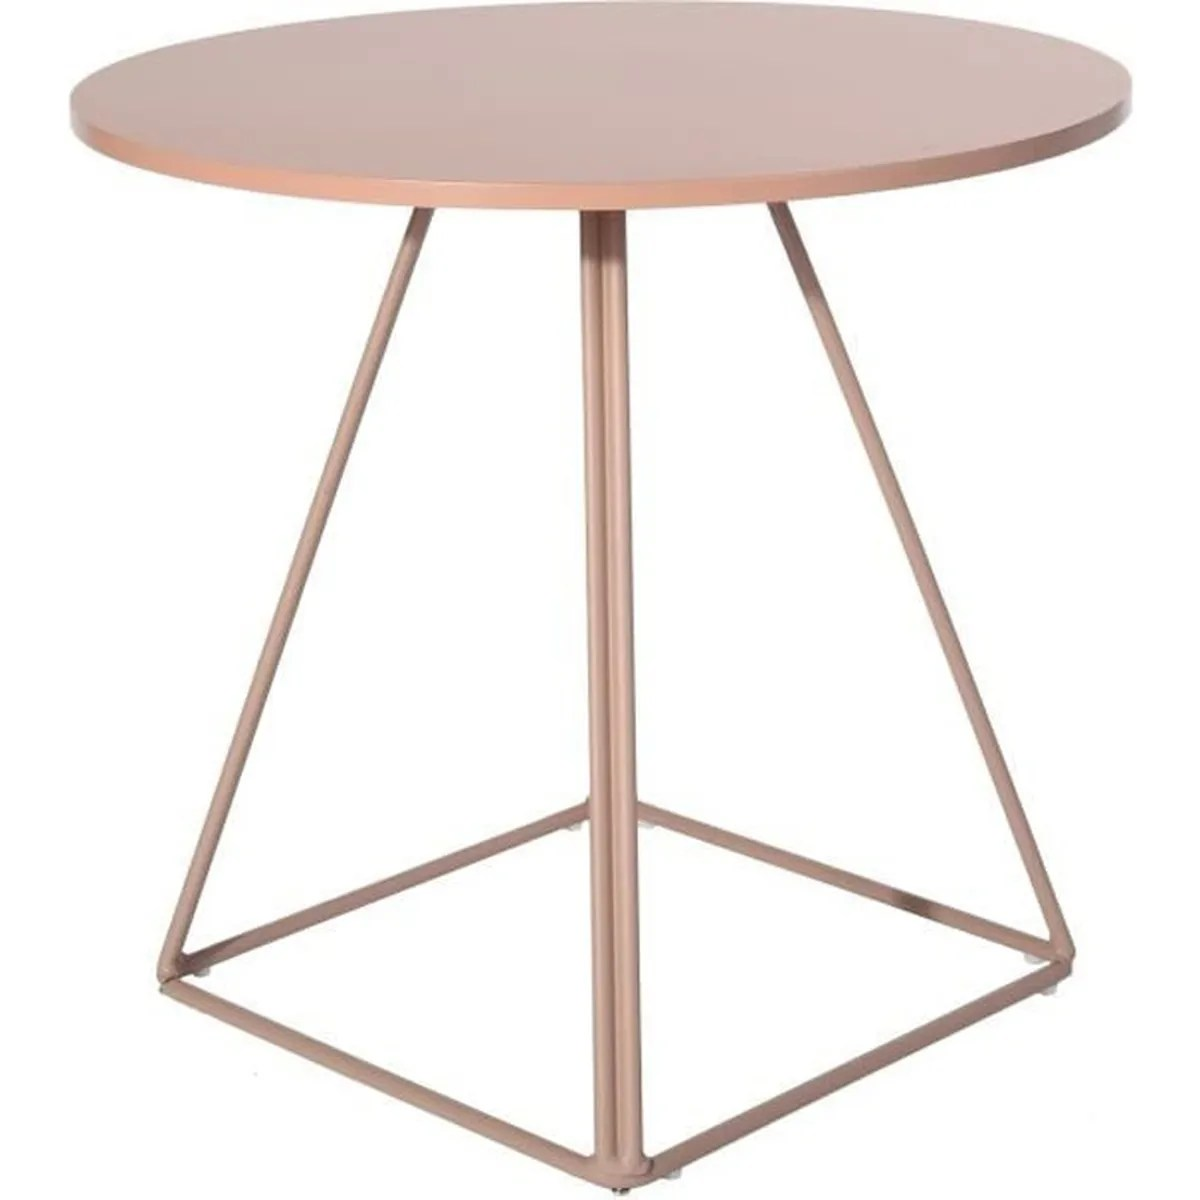 Table Ronde 80 Cm 4 Personnes Table à Manger Ronde 80cm Rose